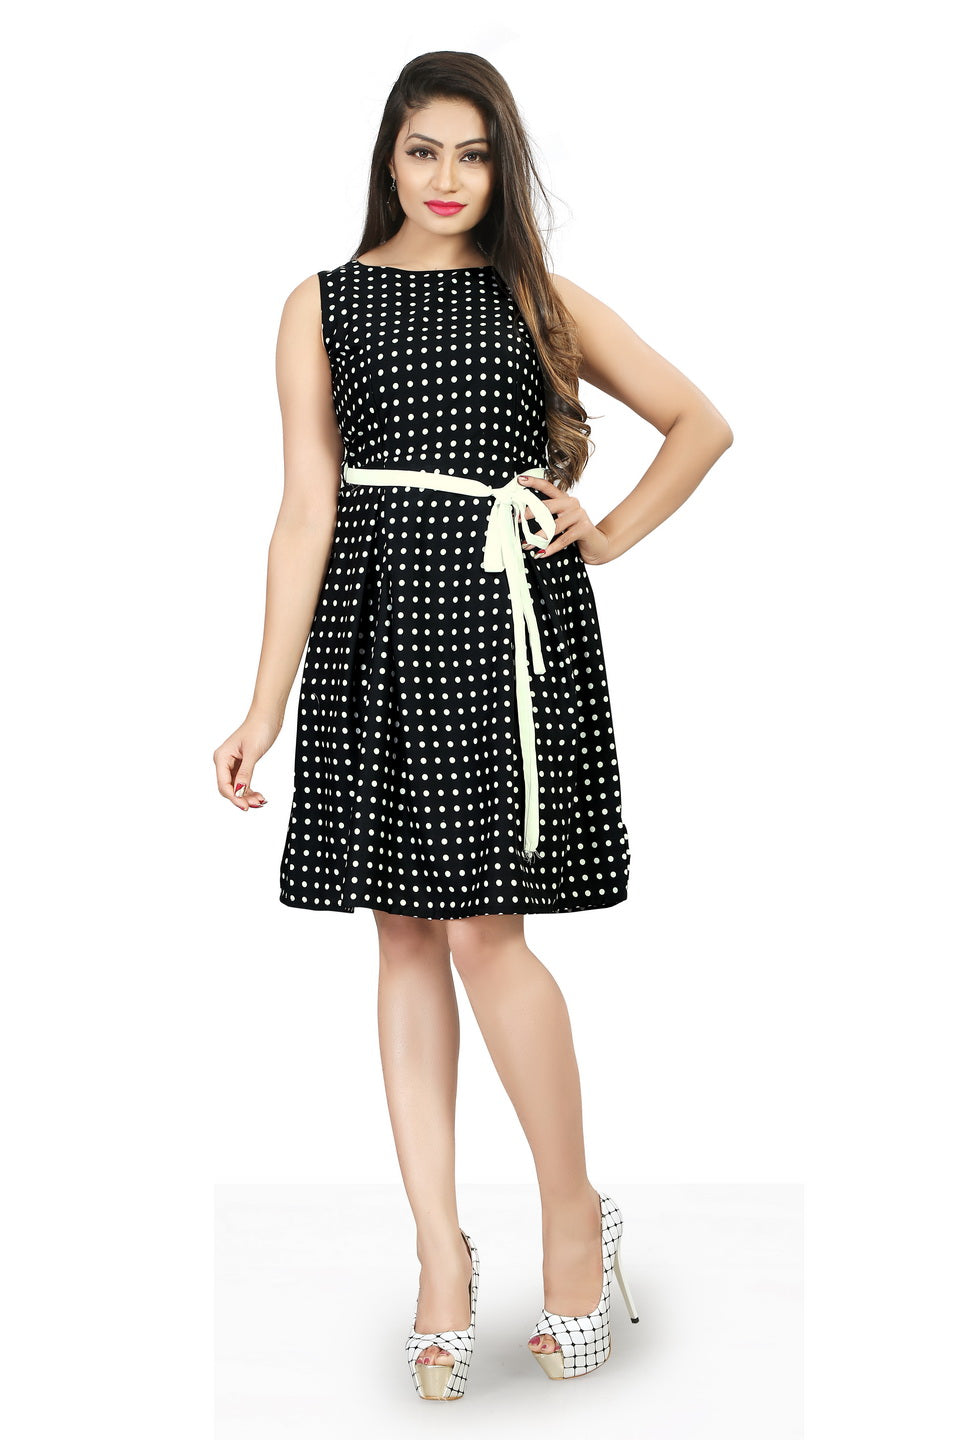 Western Dresses for Women and Girls